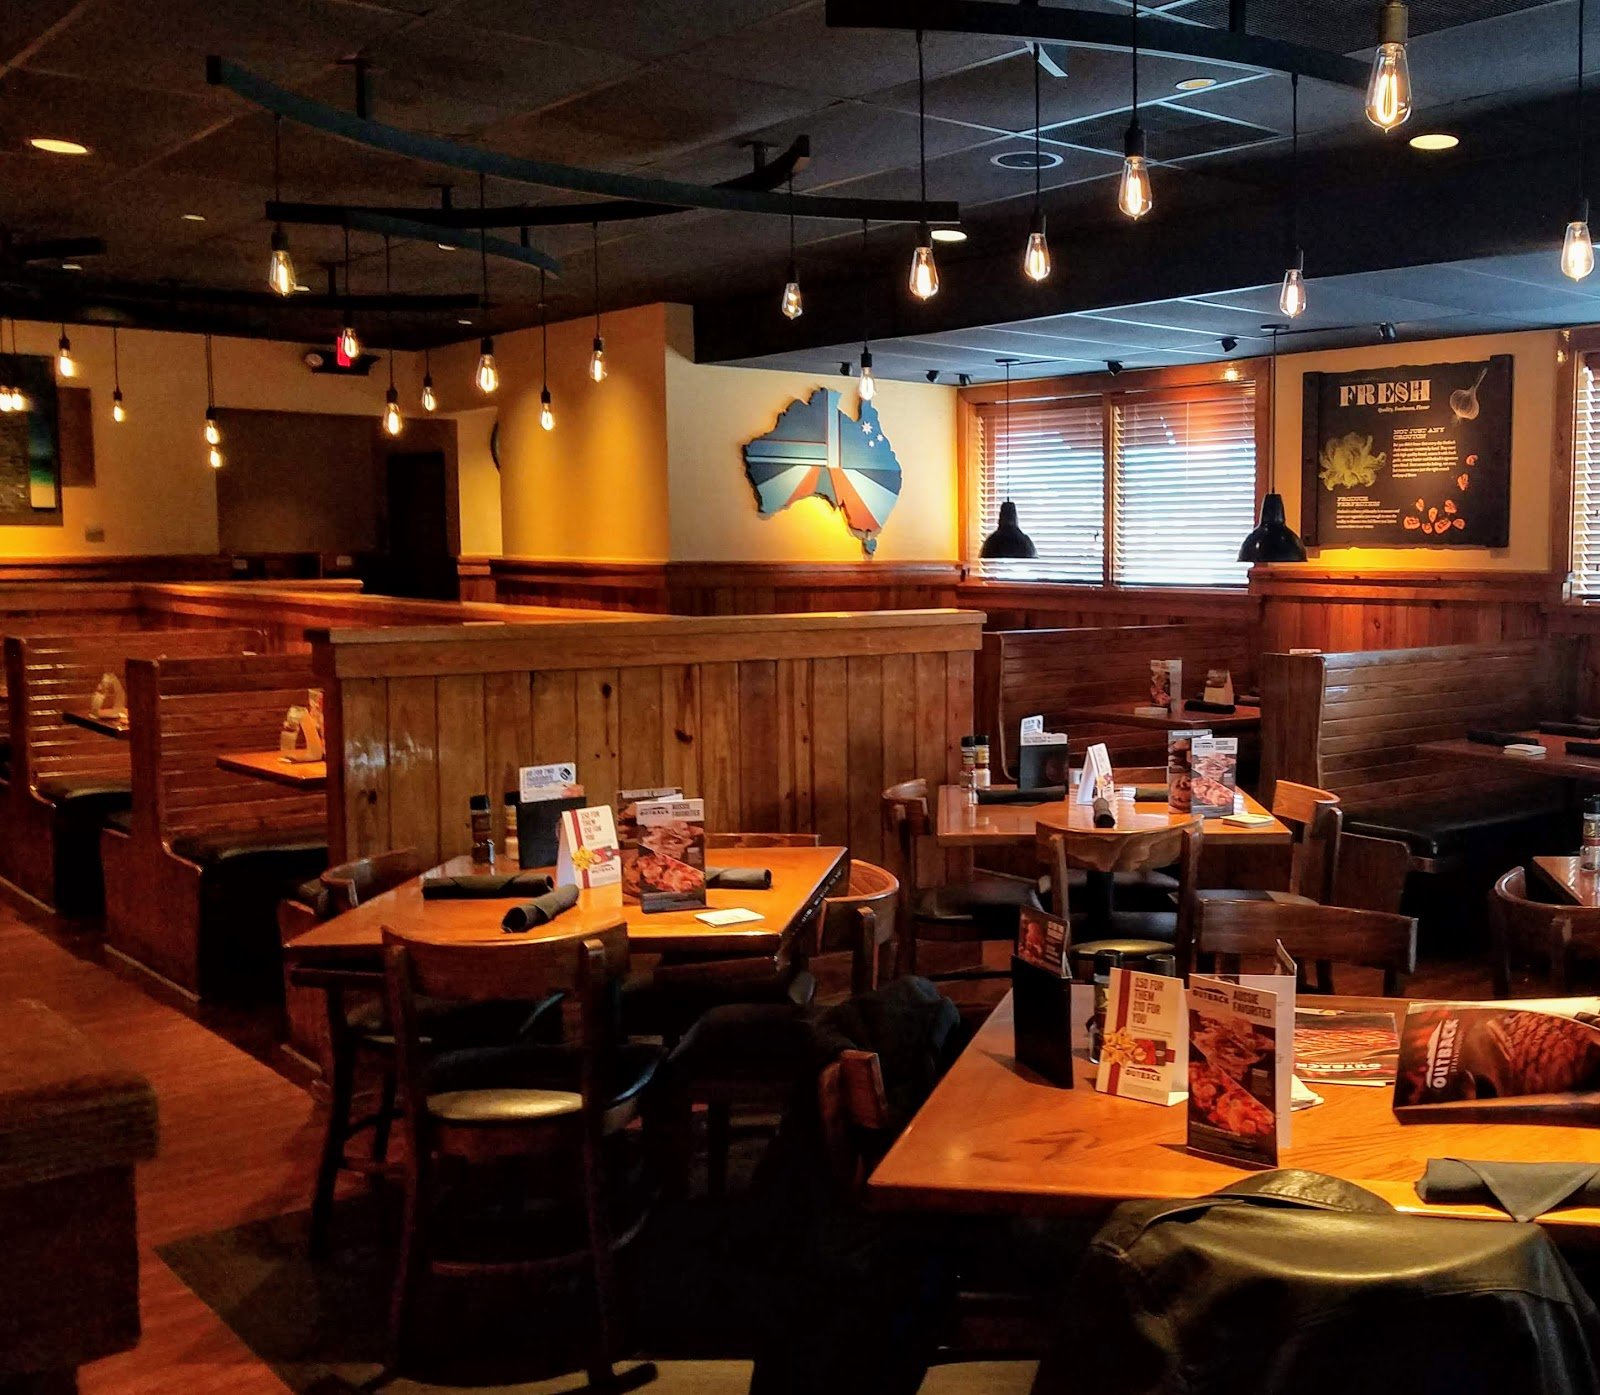 Big Daddy Dave: Birthday Dinner At Outback Steakhouse